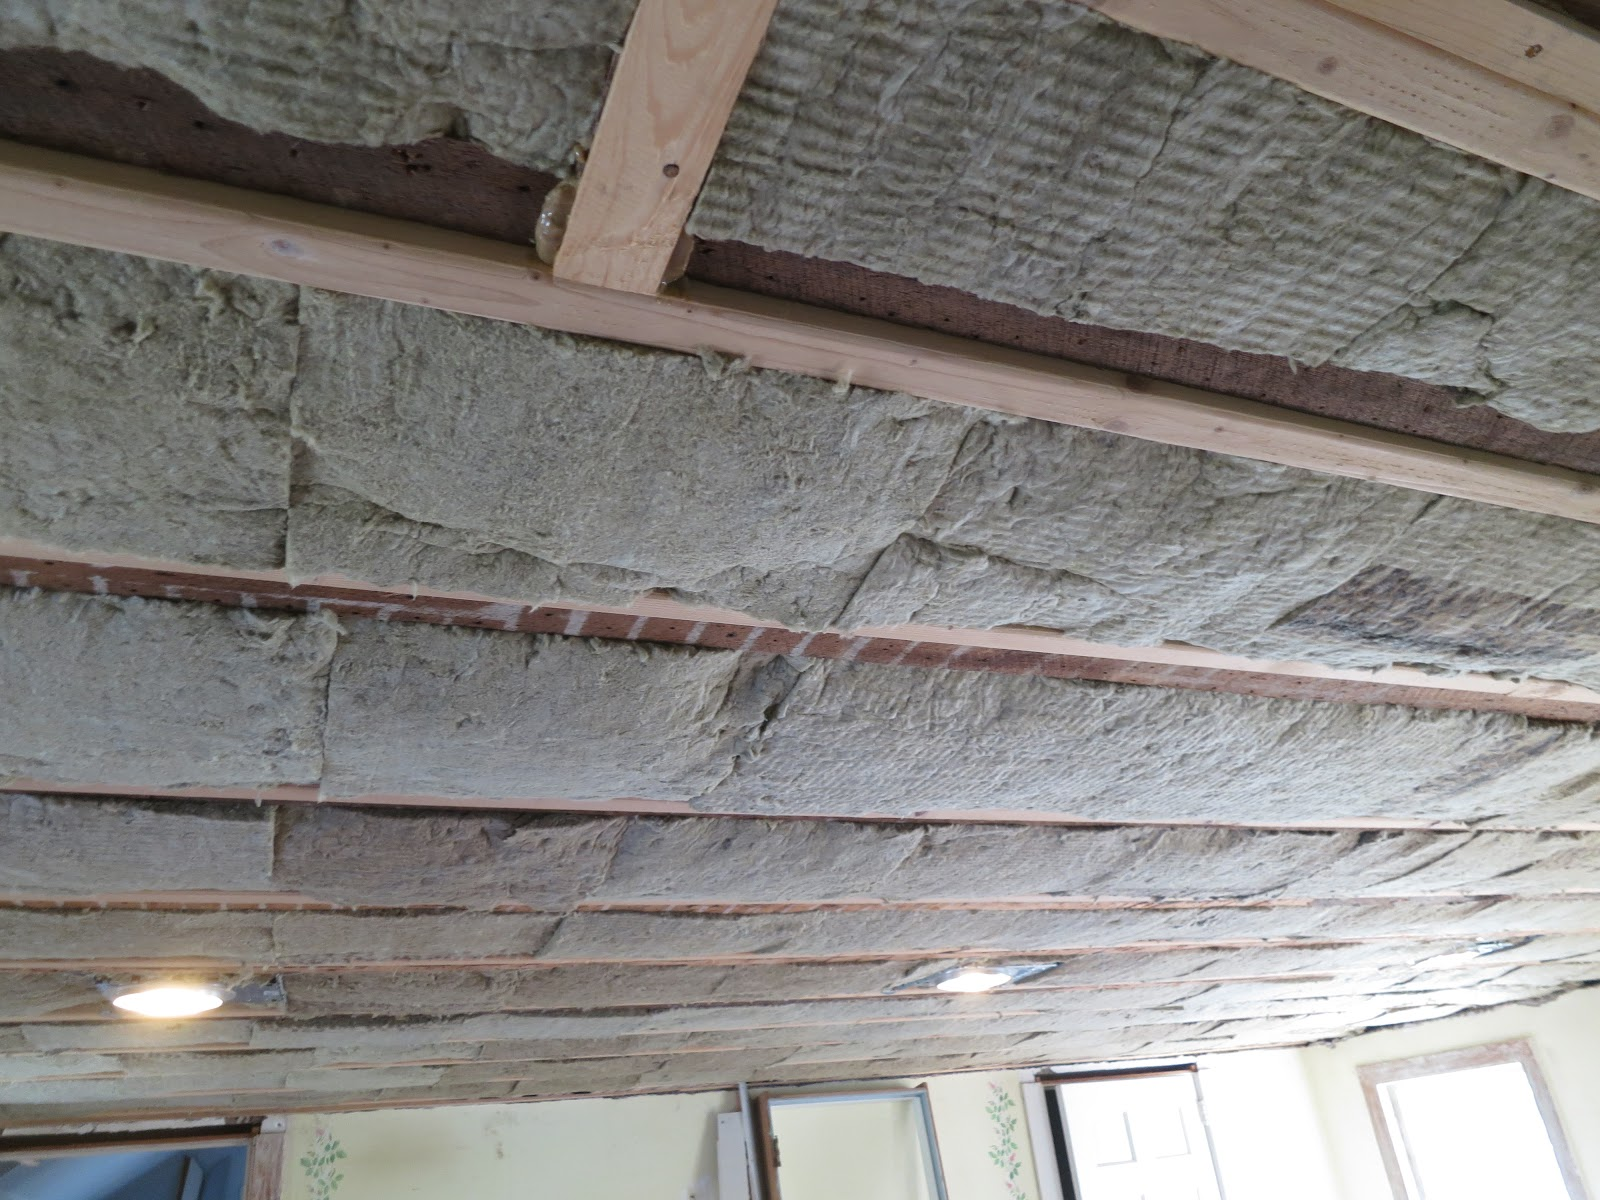 An old farm roxul vs fiberglass vs foam insulation for Roxul insulation r value